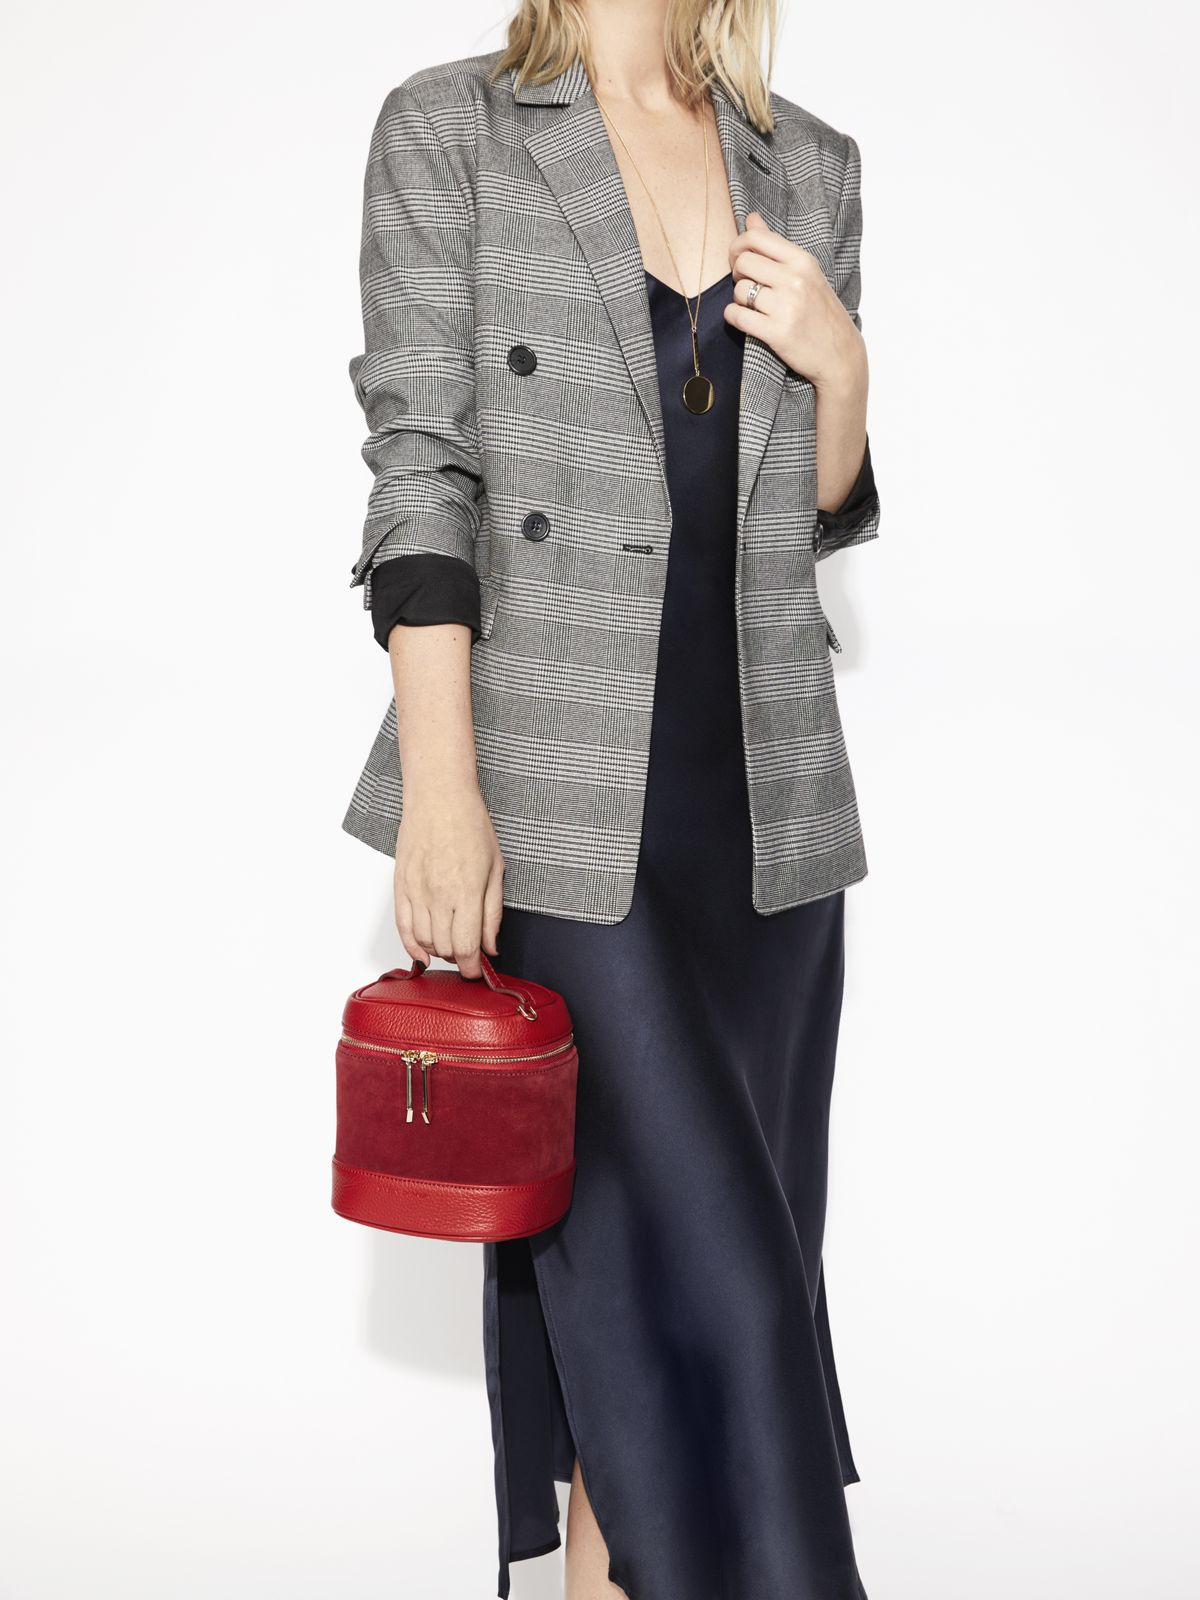 How To Elevate Workwear With Accessories title=